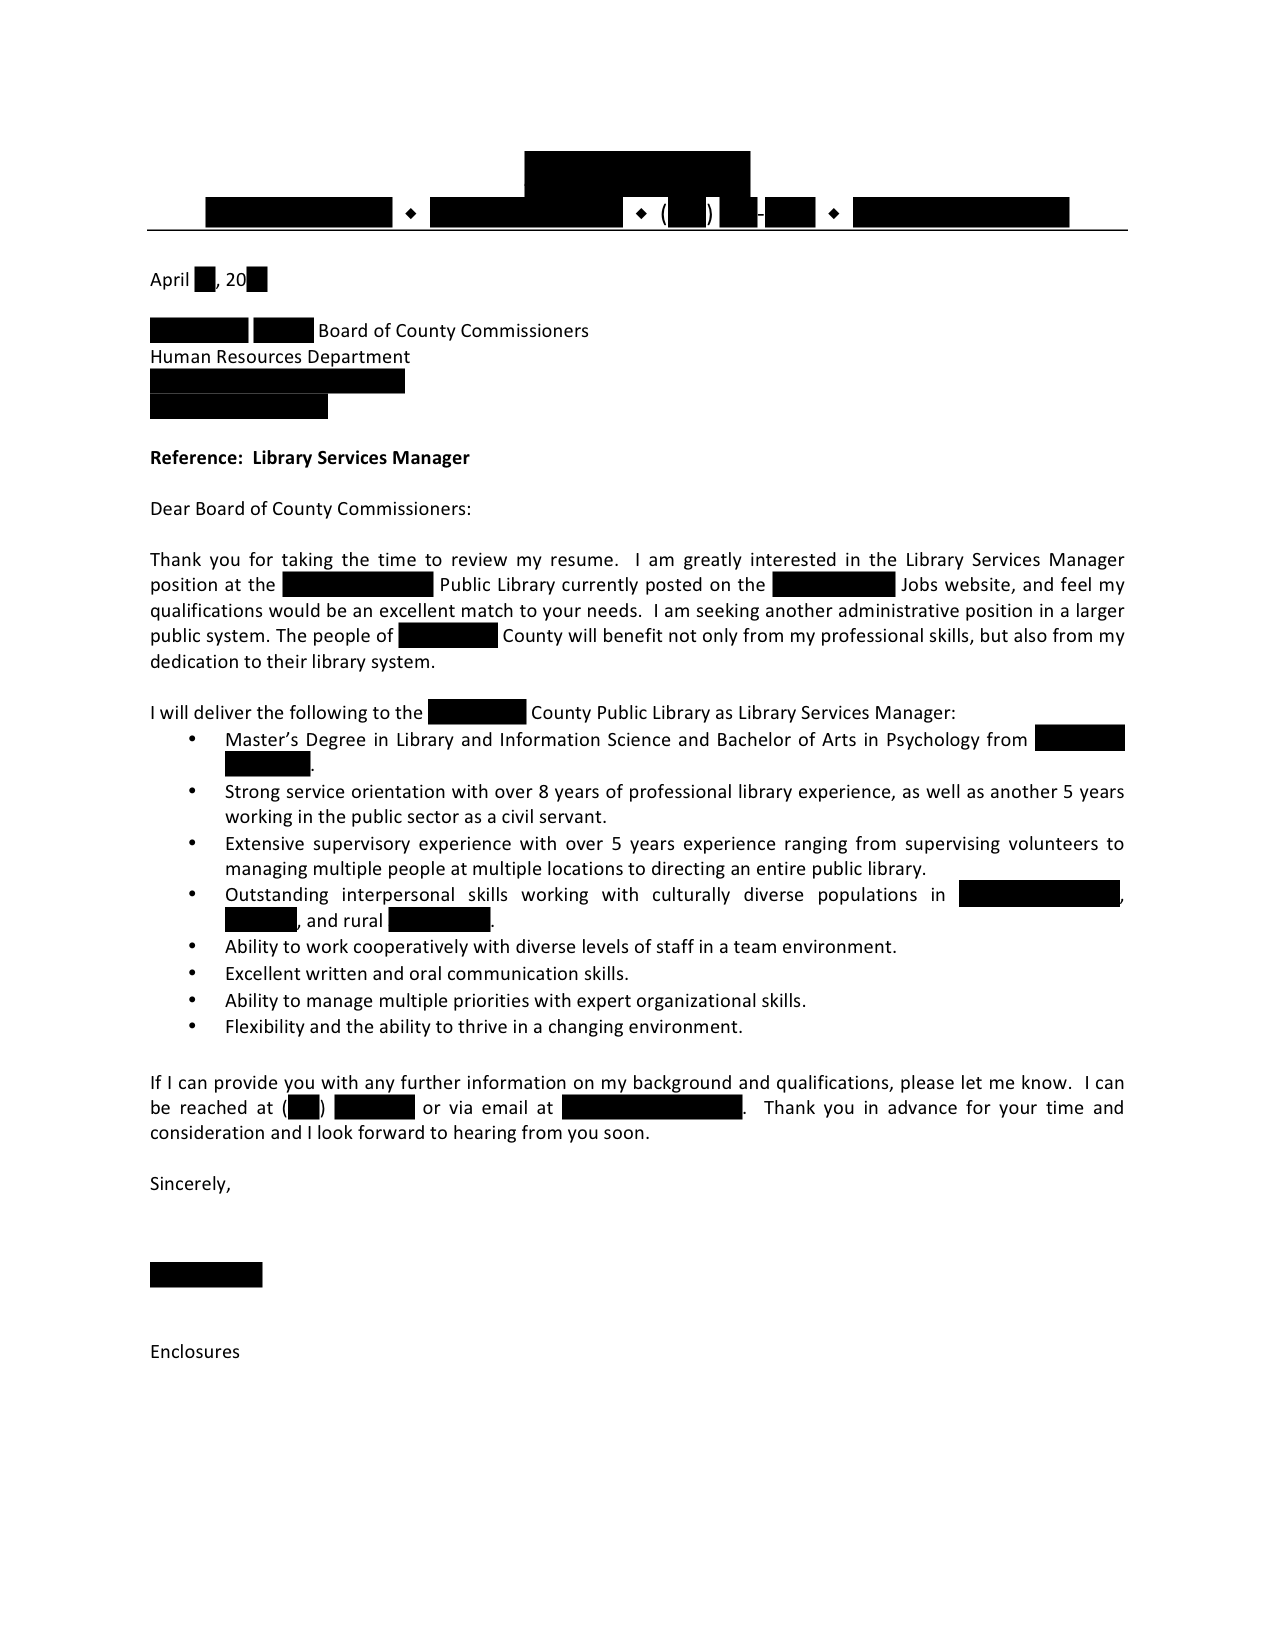 Library Services Manager cover letter | Open Cover Letters